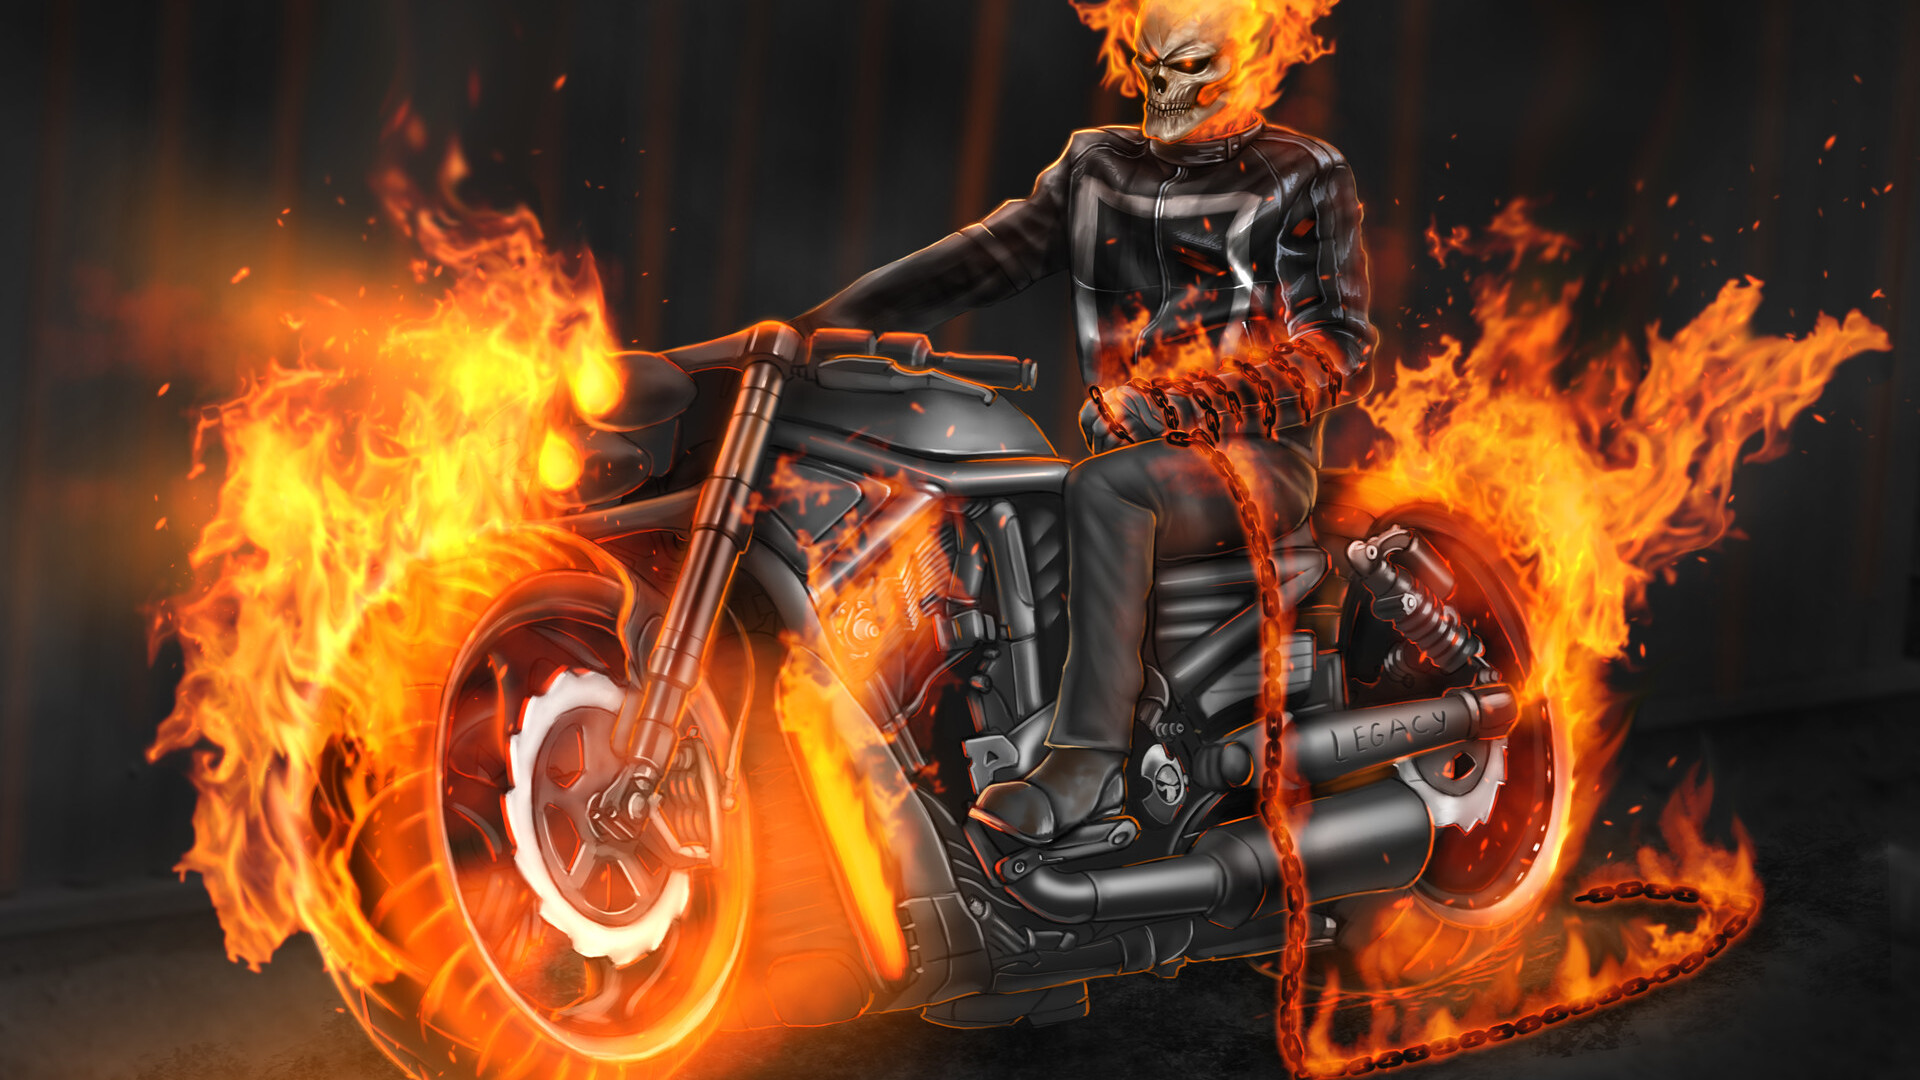 1920x1080 Ghost Rider In Bike Laptop Full Hd 1080p Hd 4k